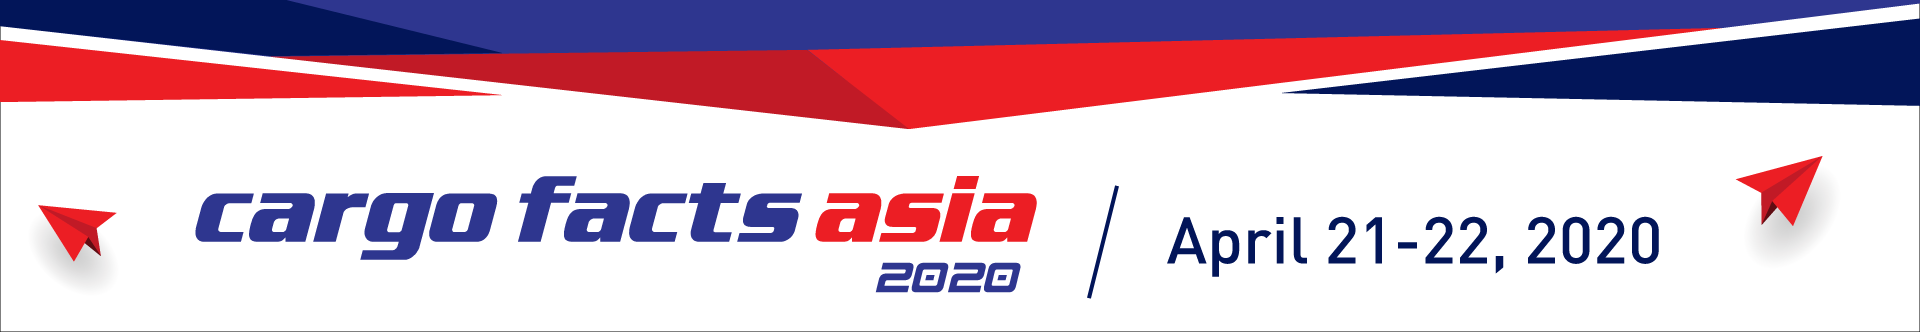 Cargo Facts Asia 2020 Virtual Experience